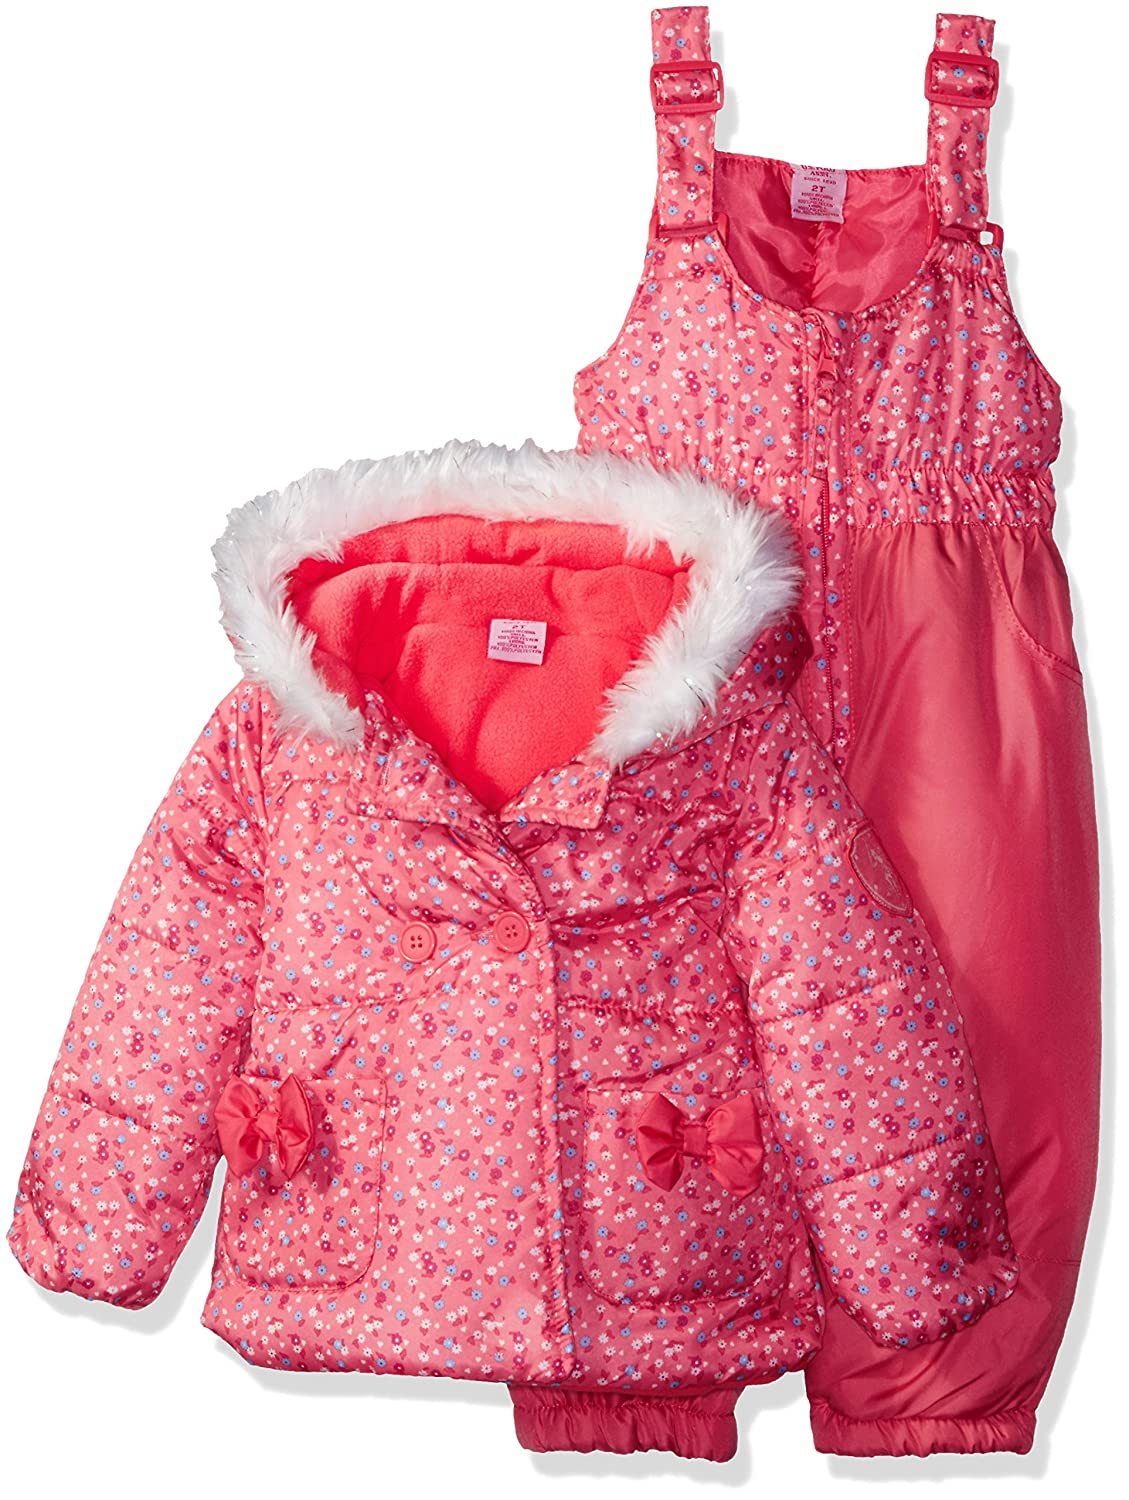 U.S. Polo Assn. Girls' Snow Suit (More Styles Available) Navy B 12M Z1U920H-09U-12M